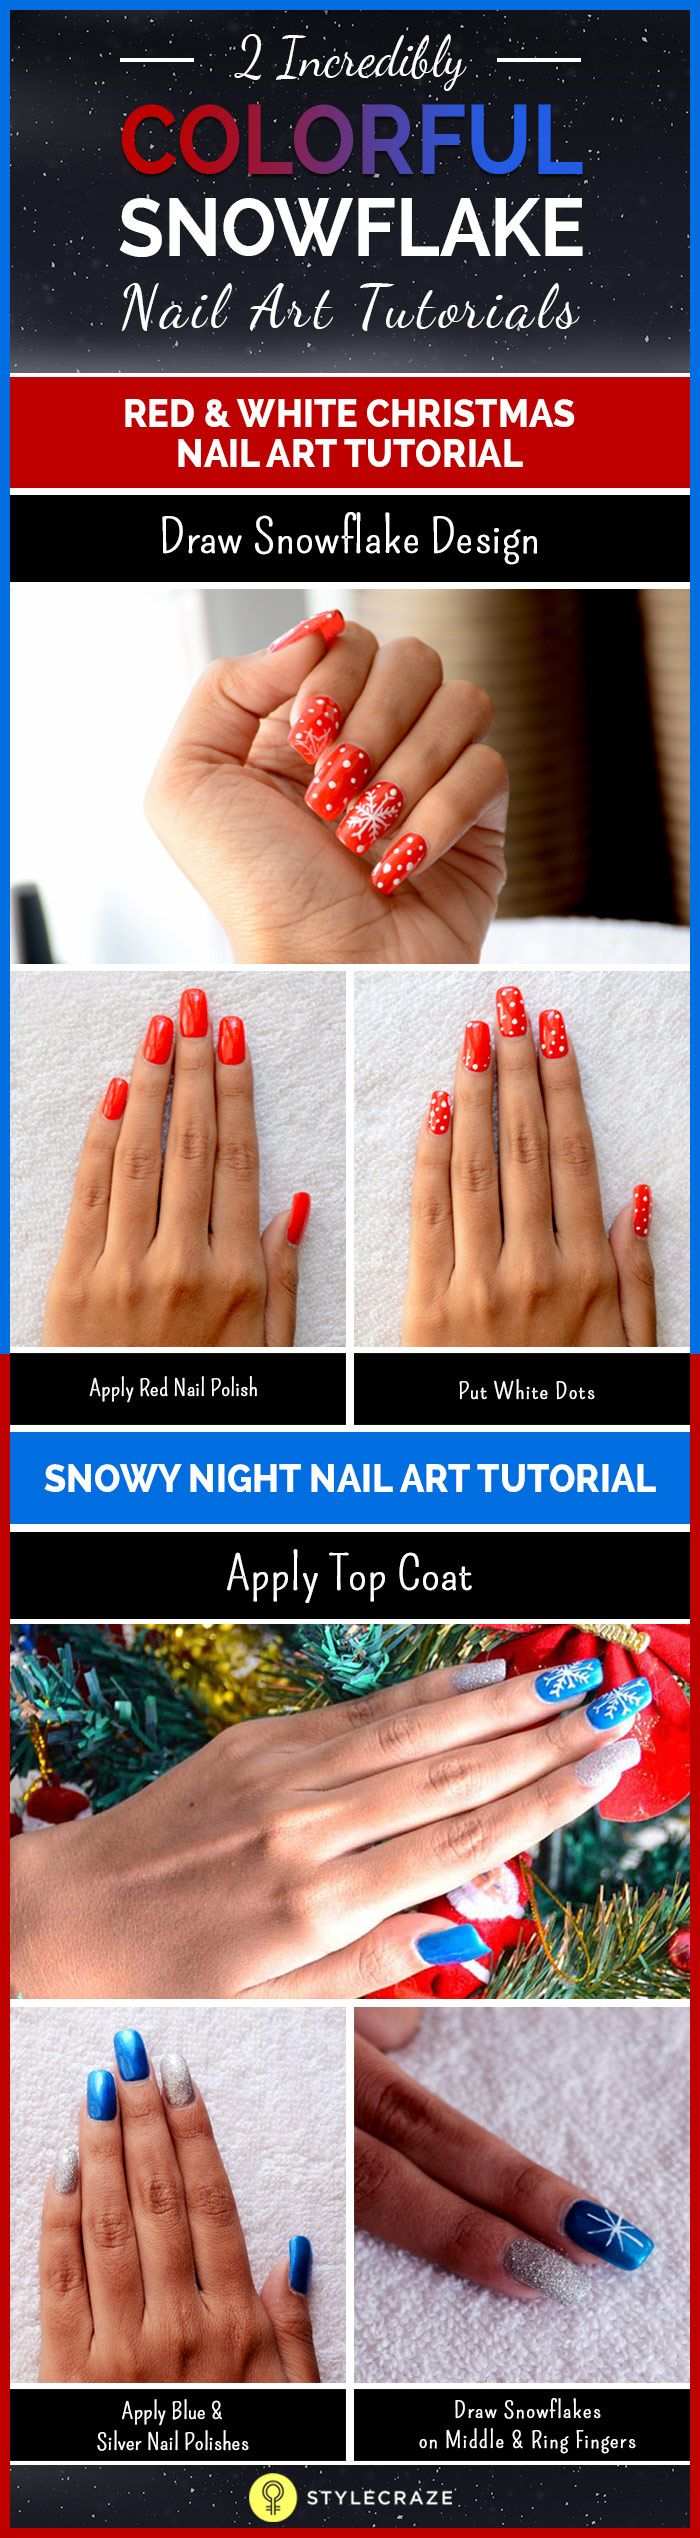 Nail polisher and callus remover nail care kit be sure to check out - 20 Fabulous And Easy Diy Christmas Nail Art Design Tutorials